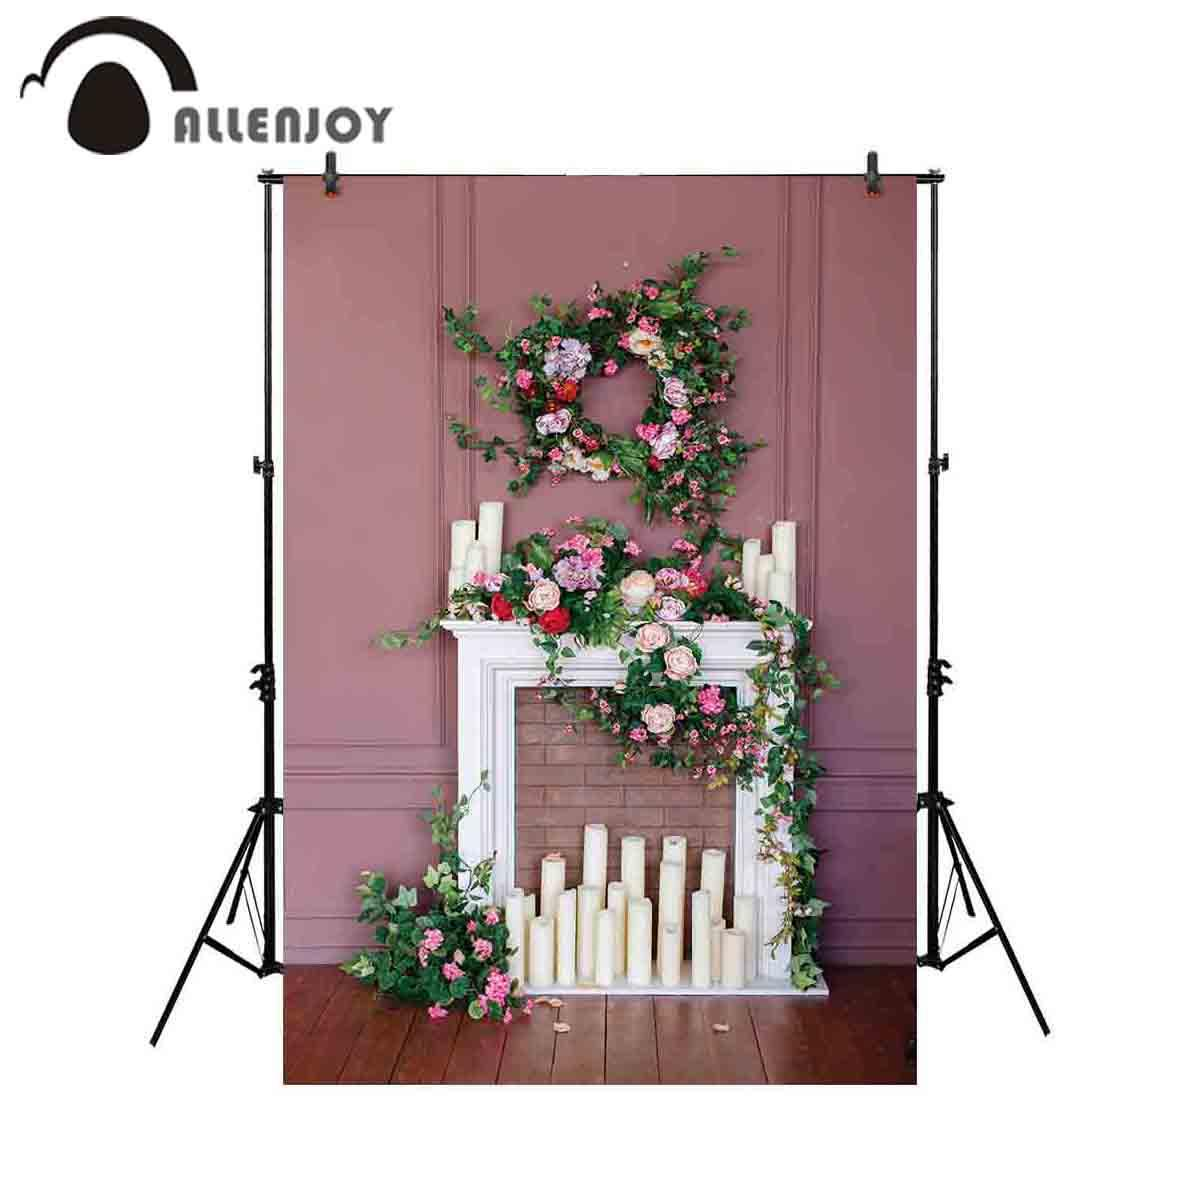 2020 Wholesale Photography Backdrop Fireplace Flower Wreath Wedding Room Background Photobooth Photoshoot Fabric Photocall From Tengdingcomputer 17 6 Dhgate Com